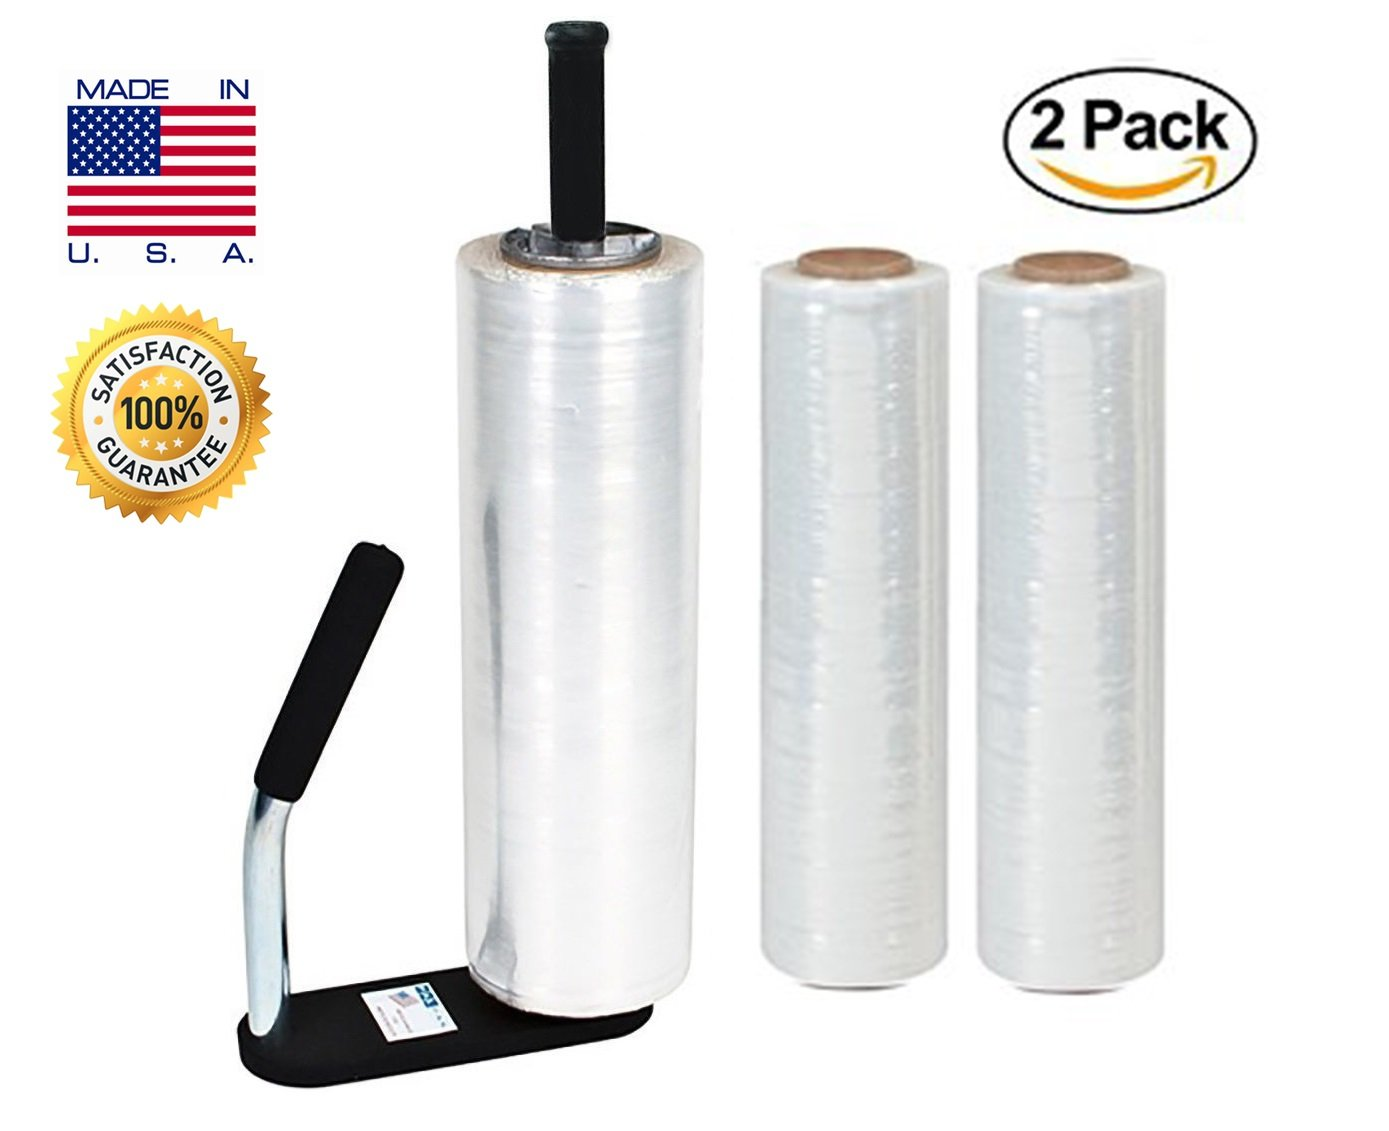 Clear Plastic Stretch Film, Industrial Strength Moving & Packing Wrap, 2 Pack 18'' x 1500 Ft Rolls with Best Selling Stretch Film Dispenser with Tension Grip Adjustment for Furniture, Boxes & Pallets